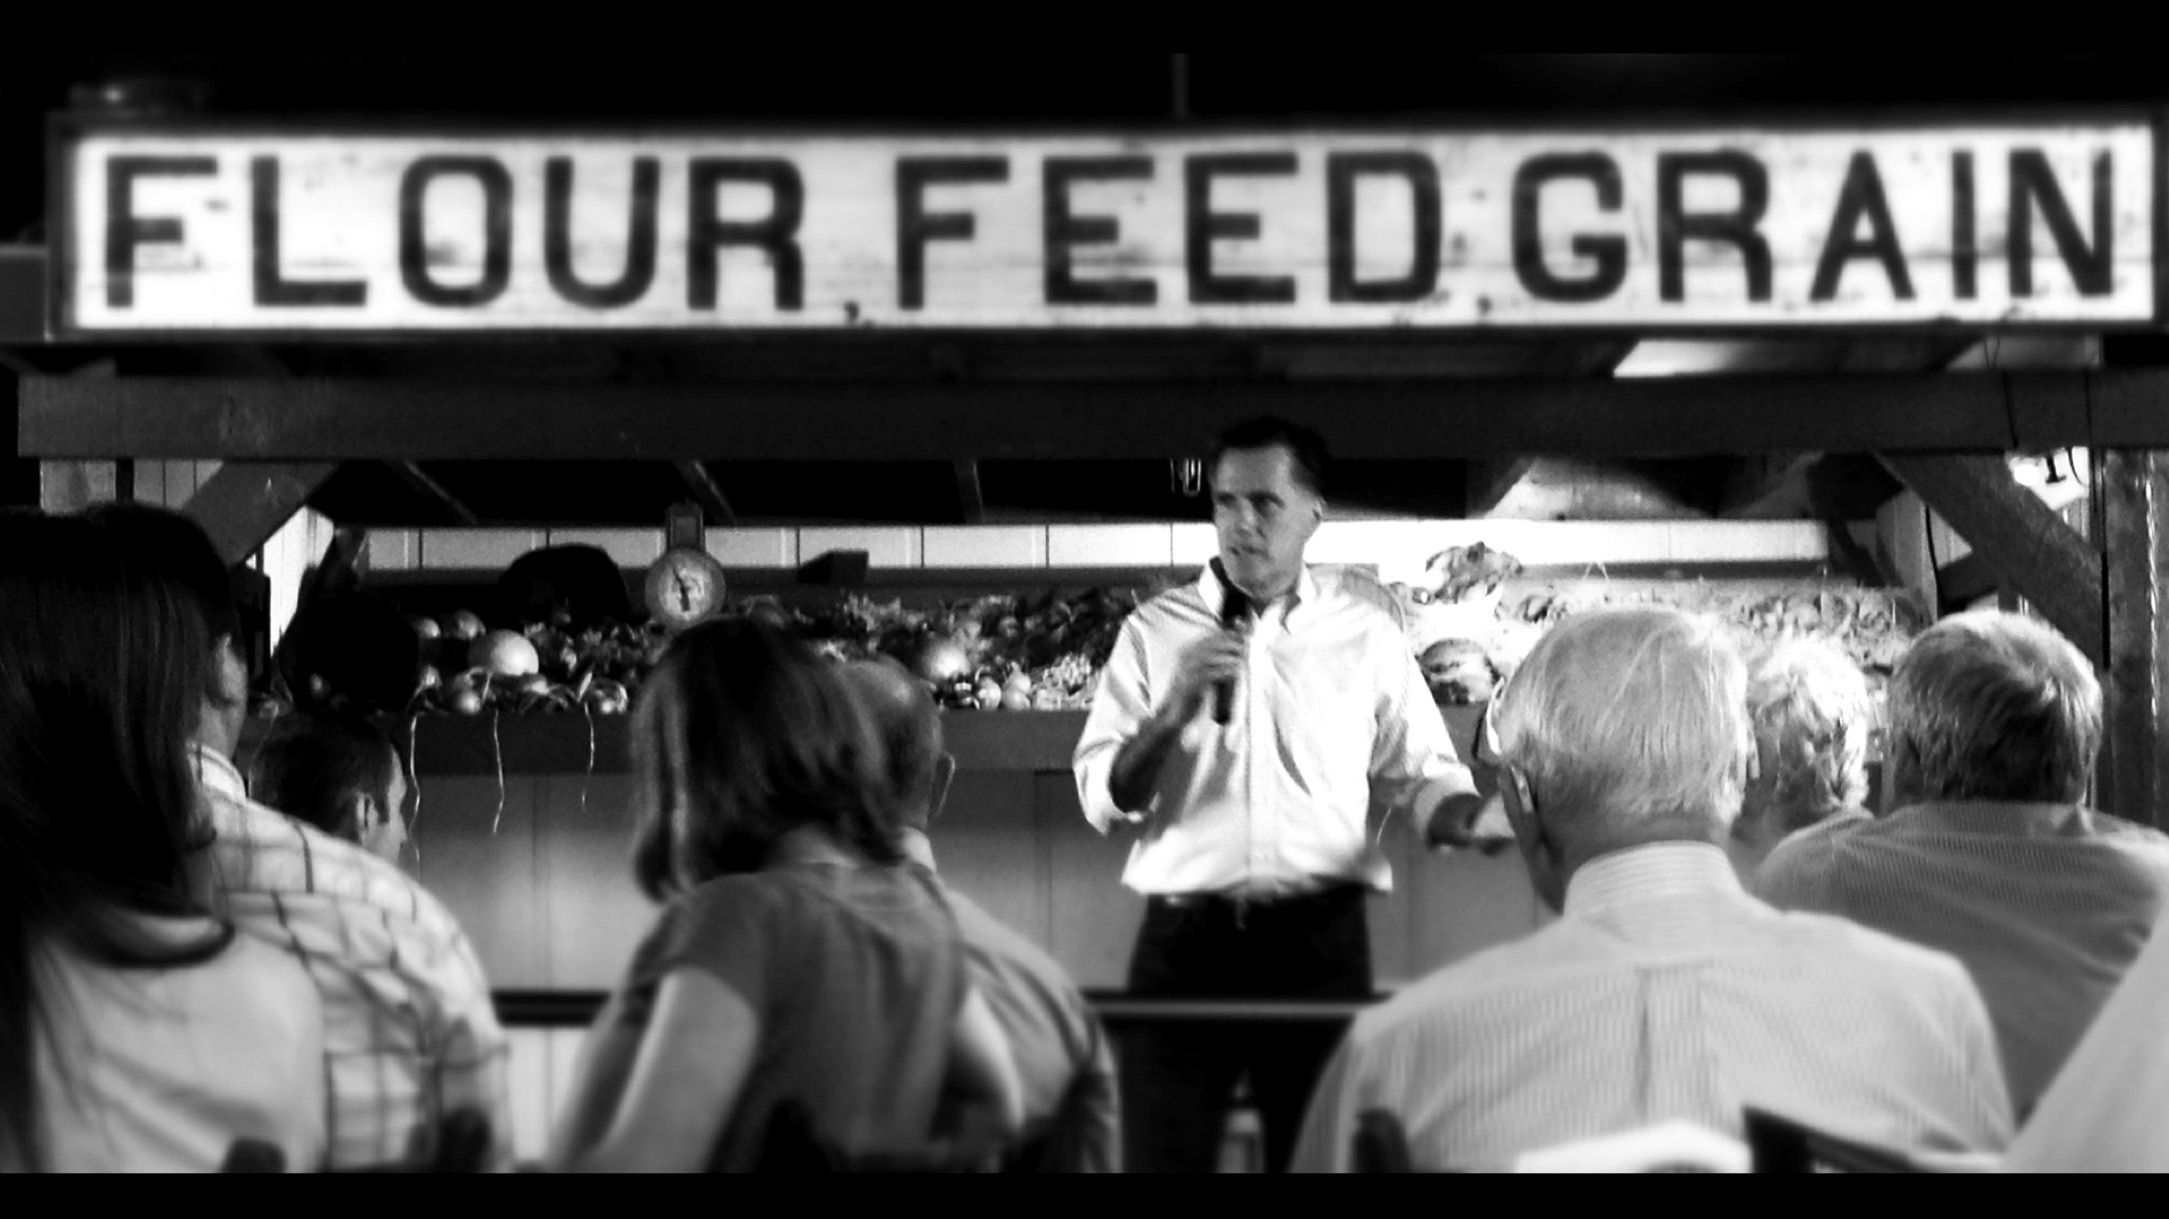 Republican presidential candidate Mitt Romney delivers remarks during a campaign stop at the Machine Shed restaurant  in Rockford, Ill., on March 18.